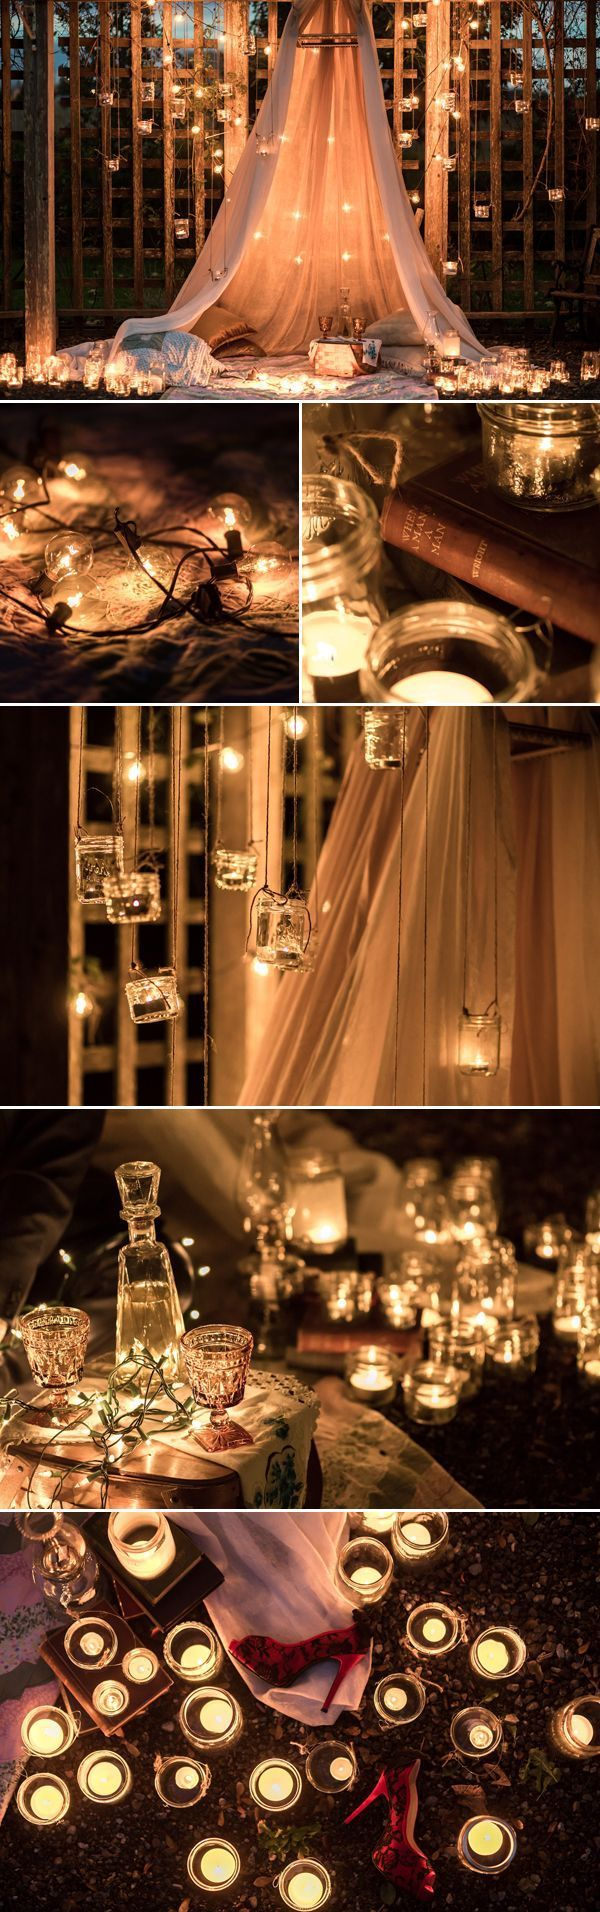 Magical Romantic Candle Light Engagement Session from Kunioo - Praise Wedding